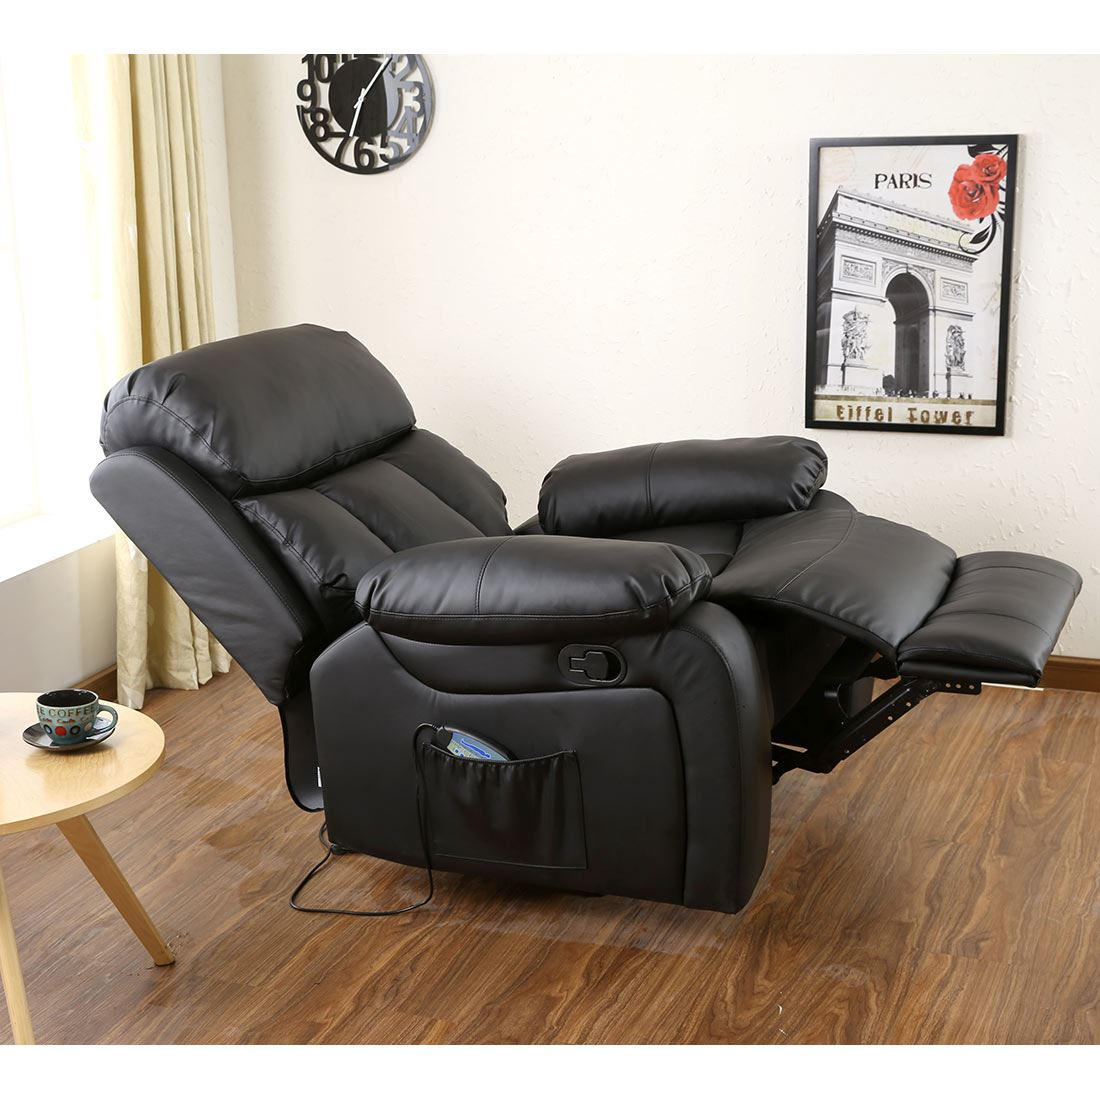 Awesome CHESTER HEATED LEATHER MASSAGE RECLINER CHAIR SOFA LOUNGE